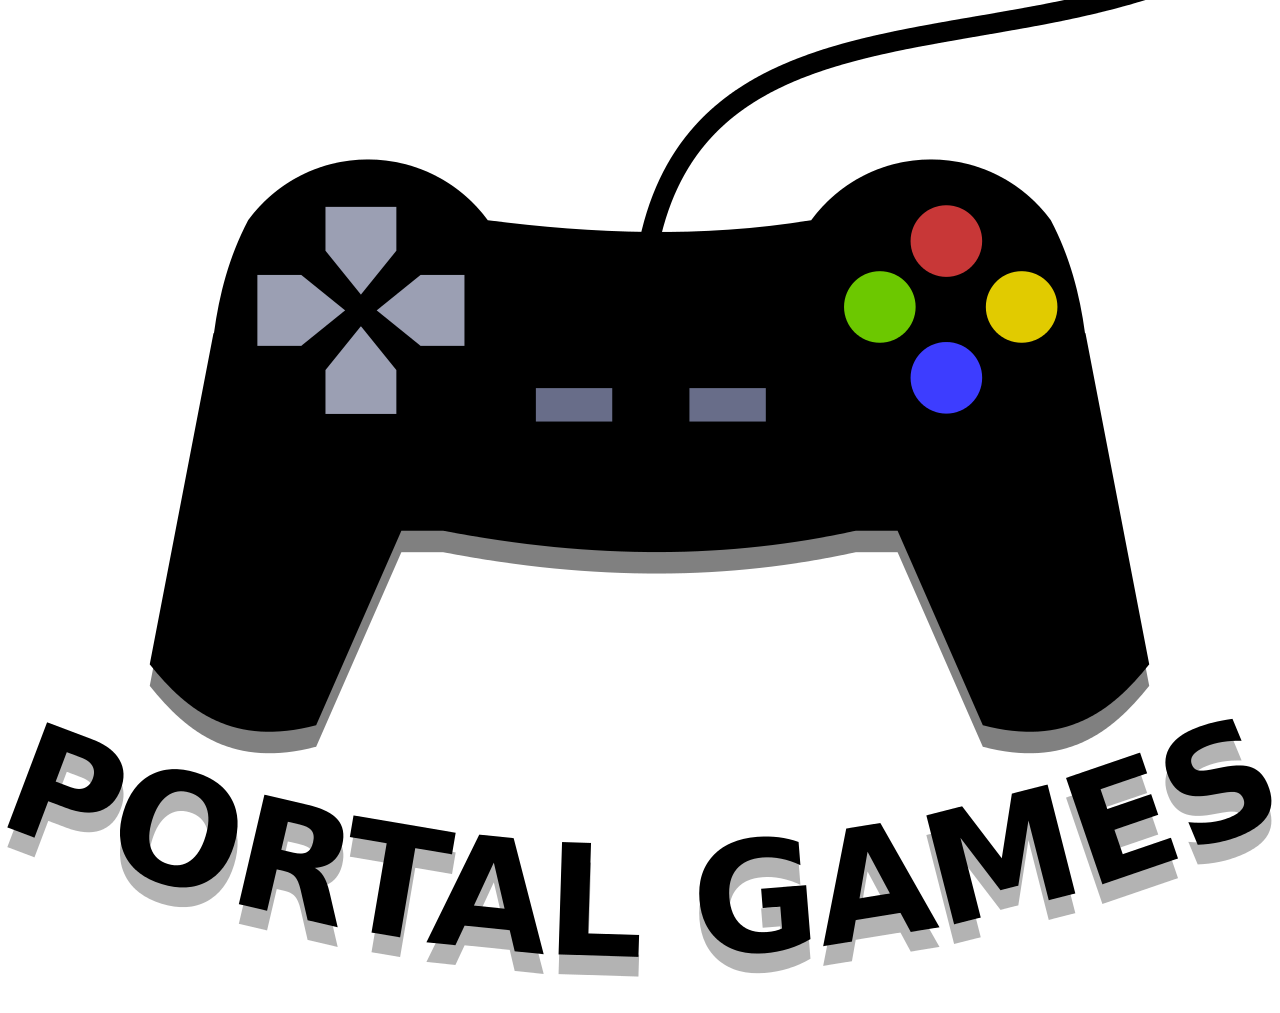 Portal (Video Game) svg #20, Download drawings